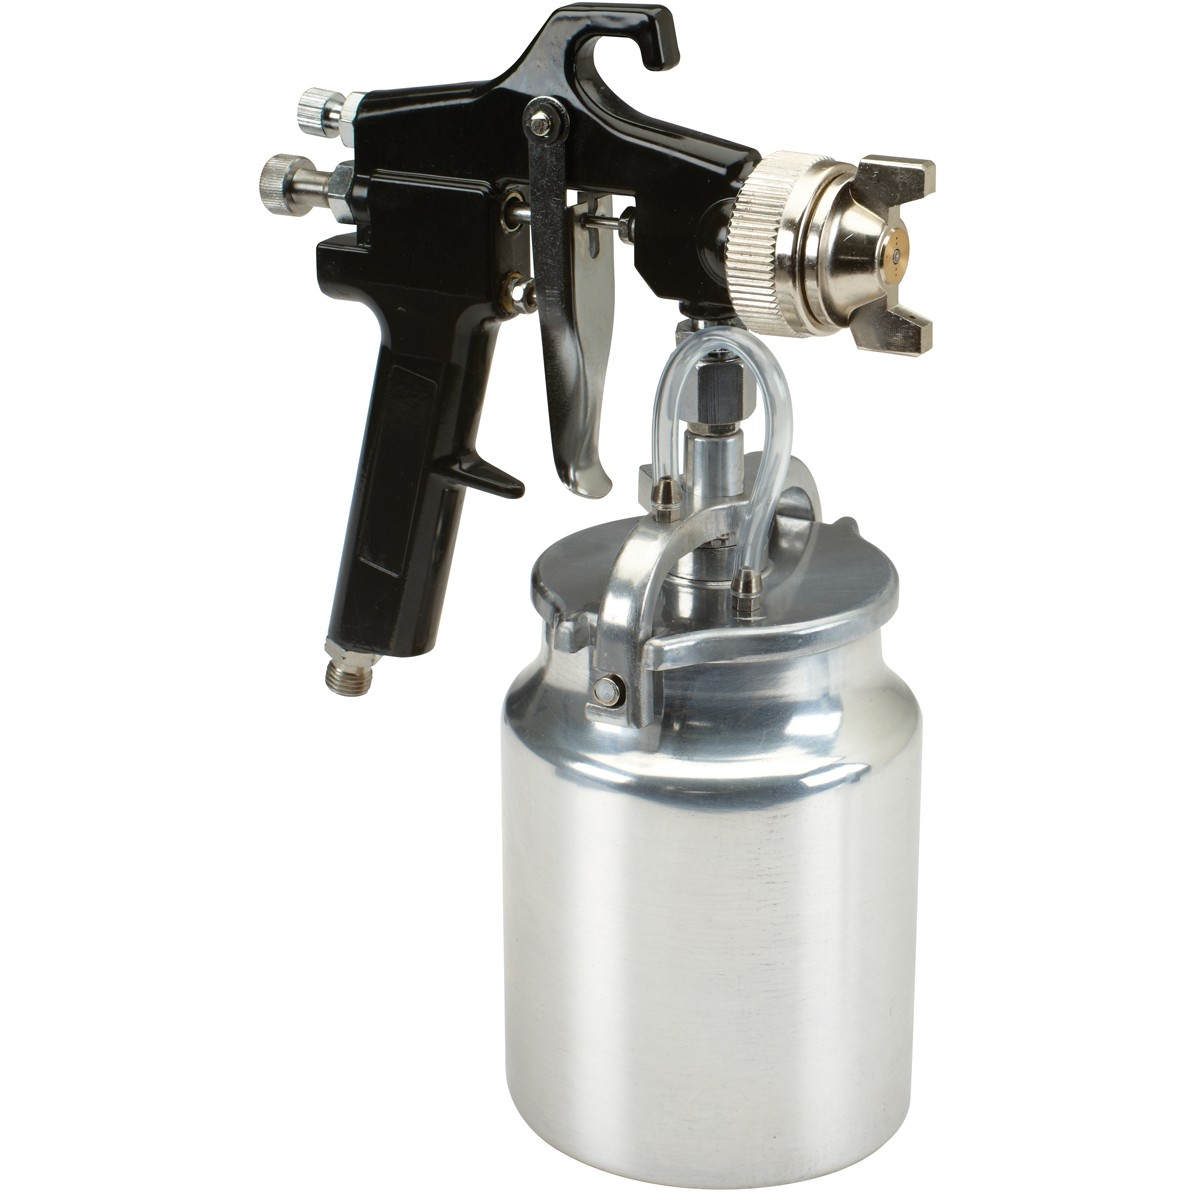 32 oz. Heavy Duty Multi-Purpose Air Spray Gun